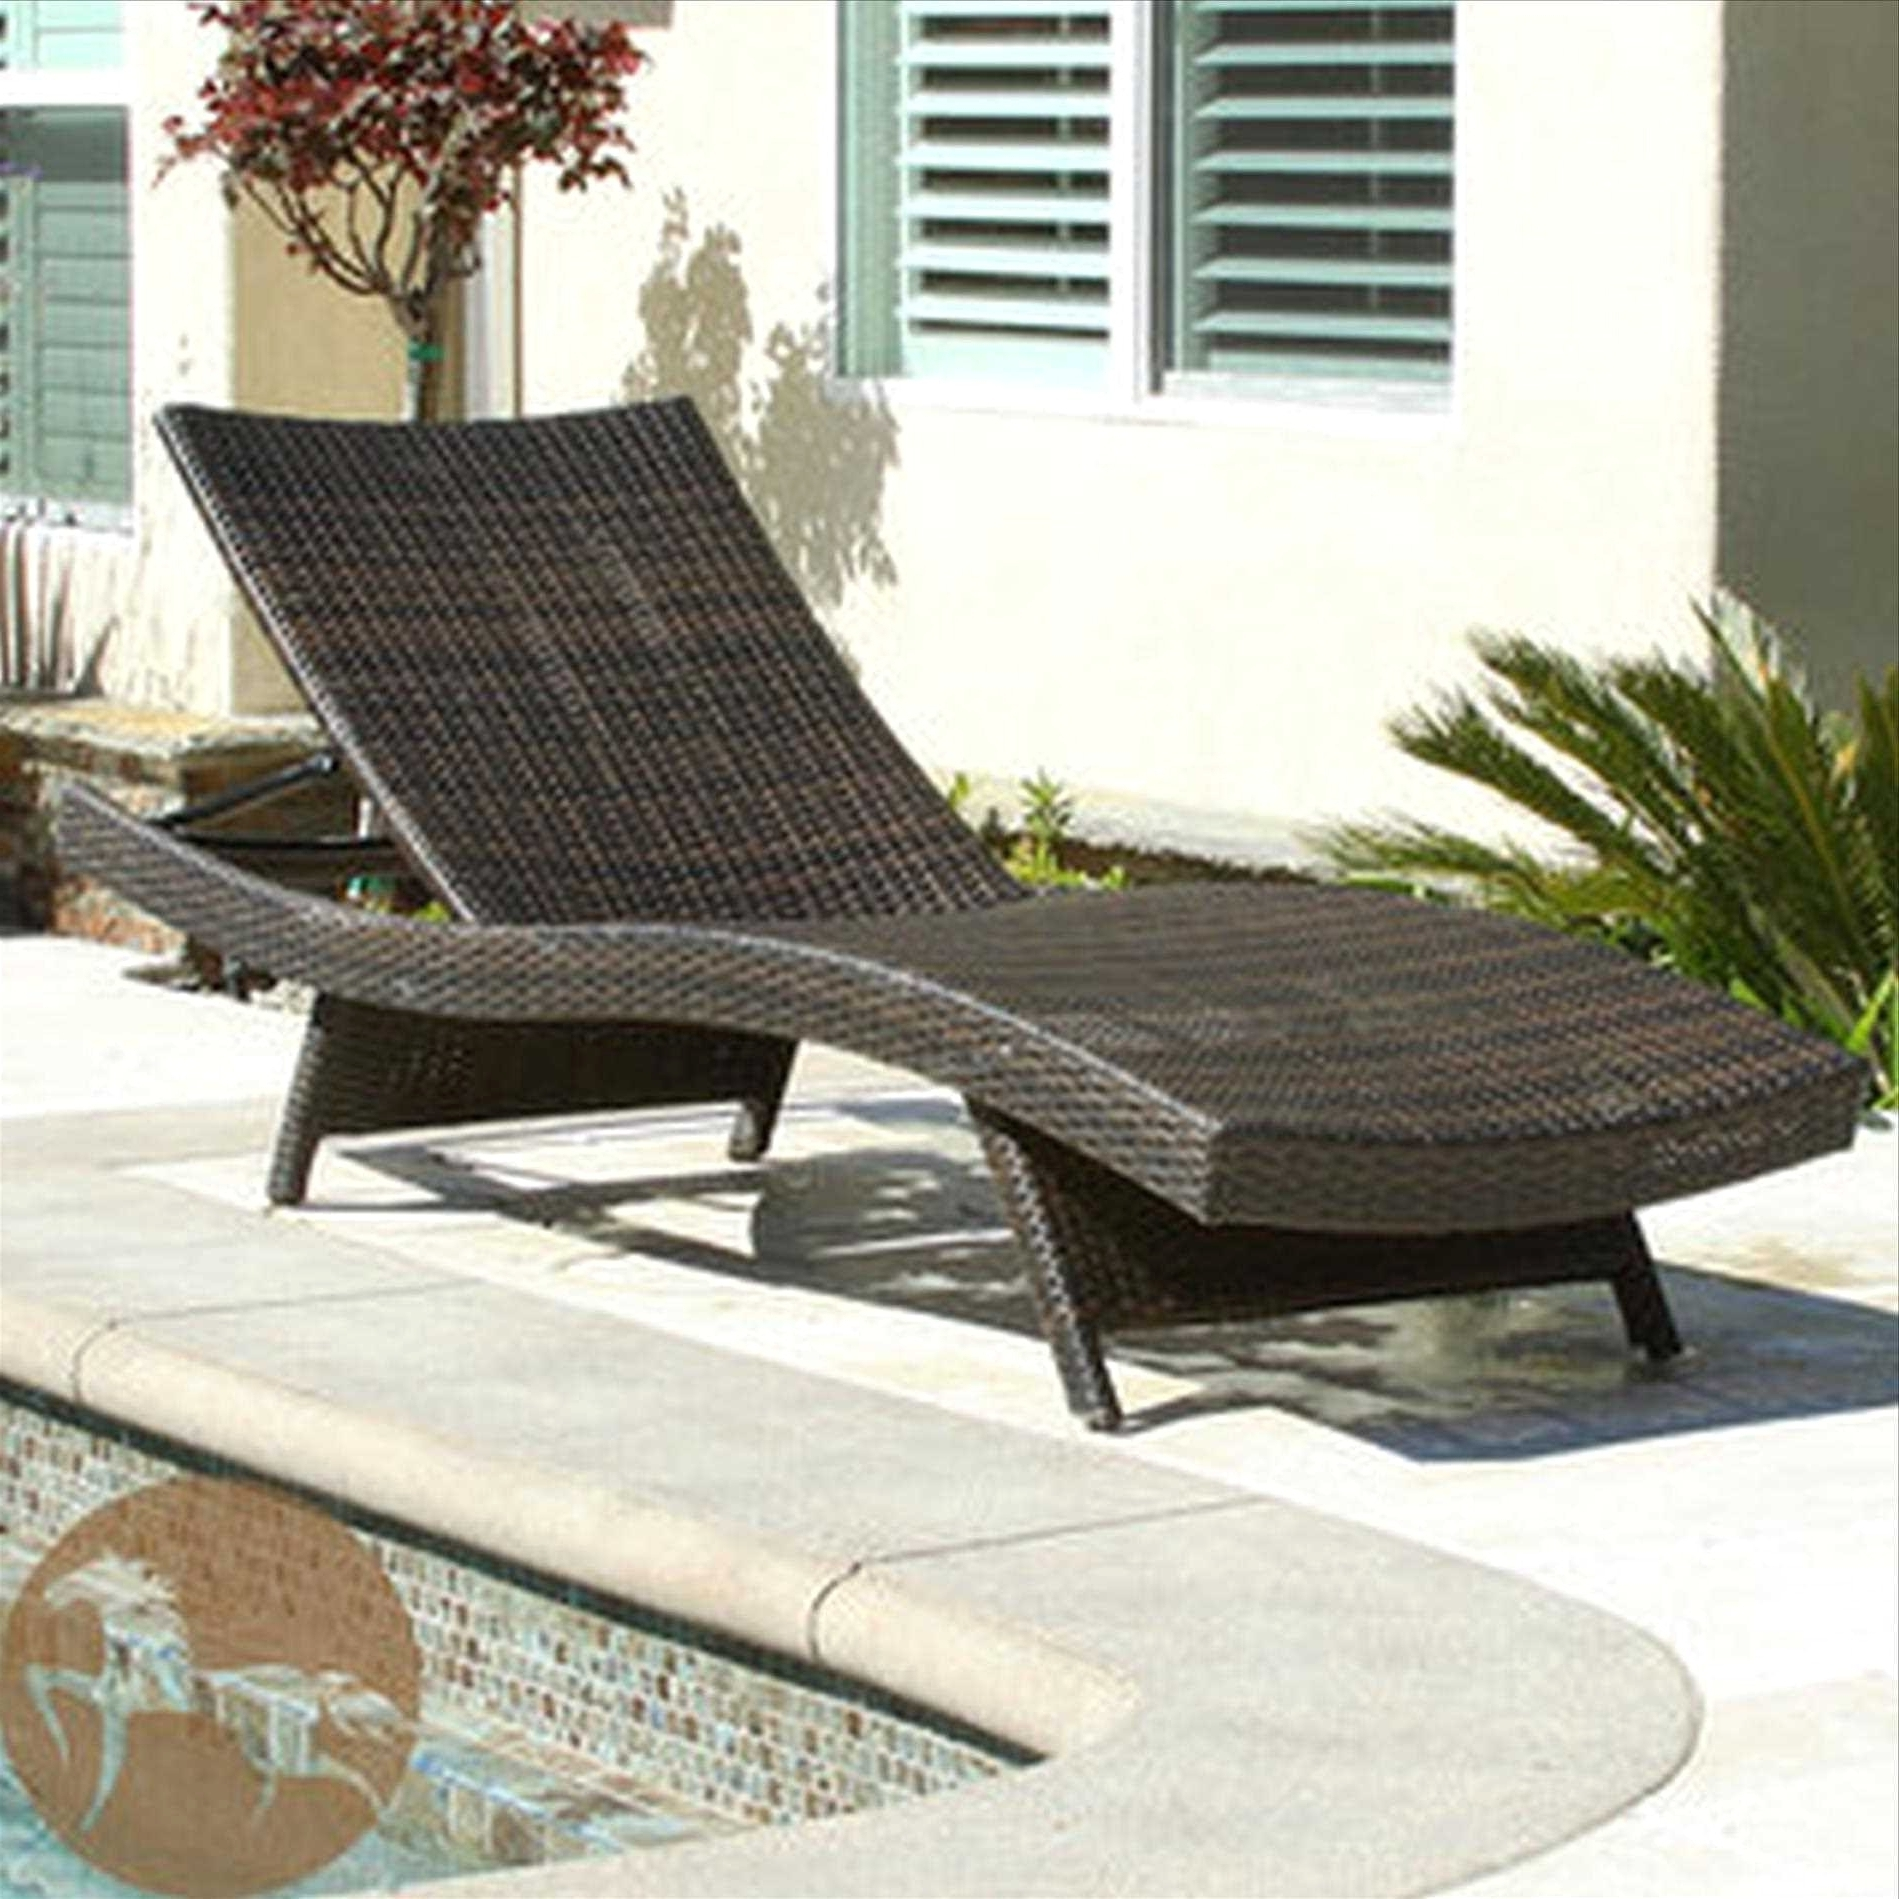 Most Recent Sears Chaise Lounge Chairs Patio Furniture • Lounge Chairs Ideas For Chaise Lounge Chairs At Sears (View 13 of 15)